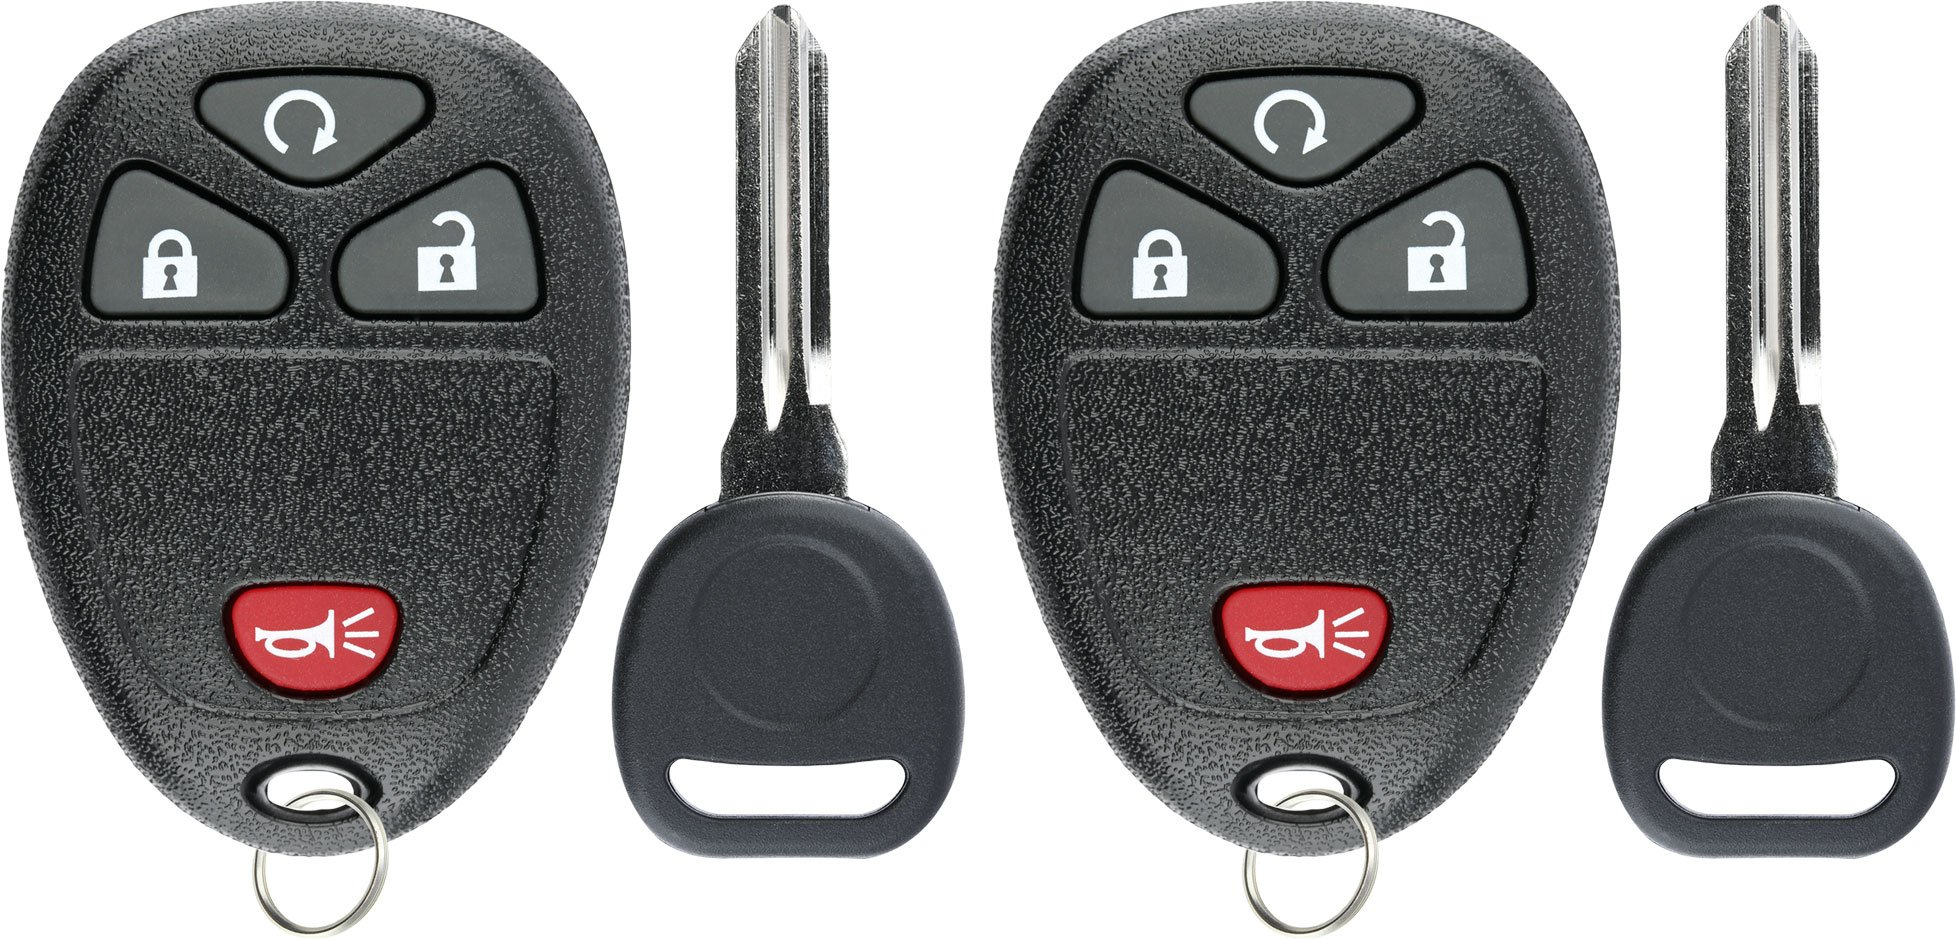 KeylessOption Keyless Entry Remote Control Car Key Fob Replacement for 15913421 with Key (Pack of 2) by KeylessOption